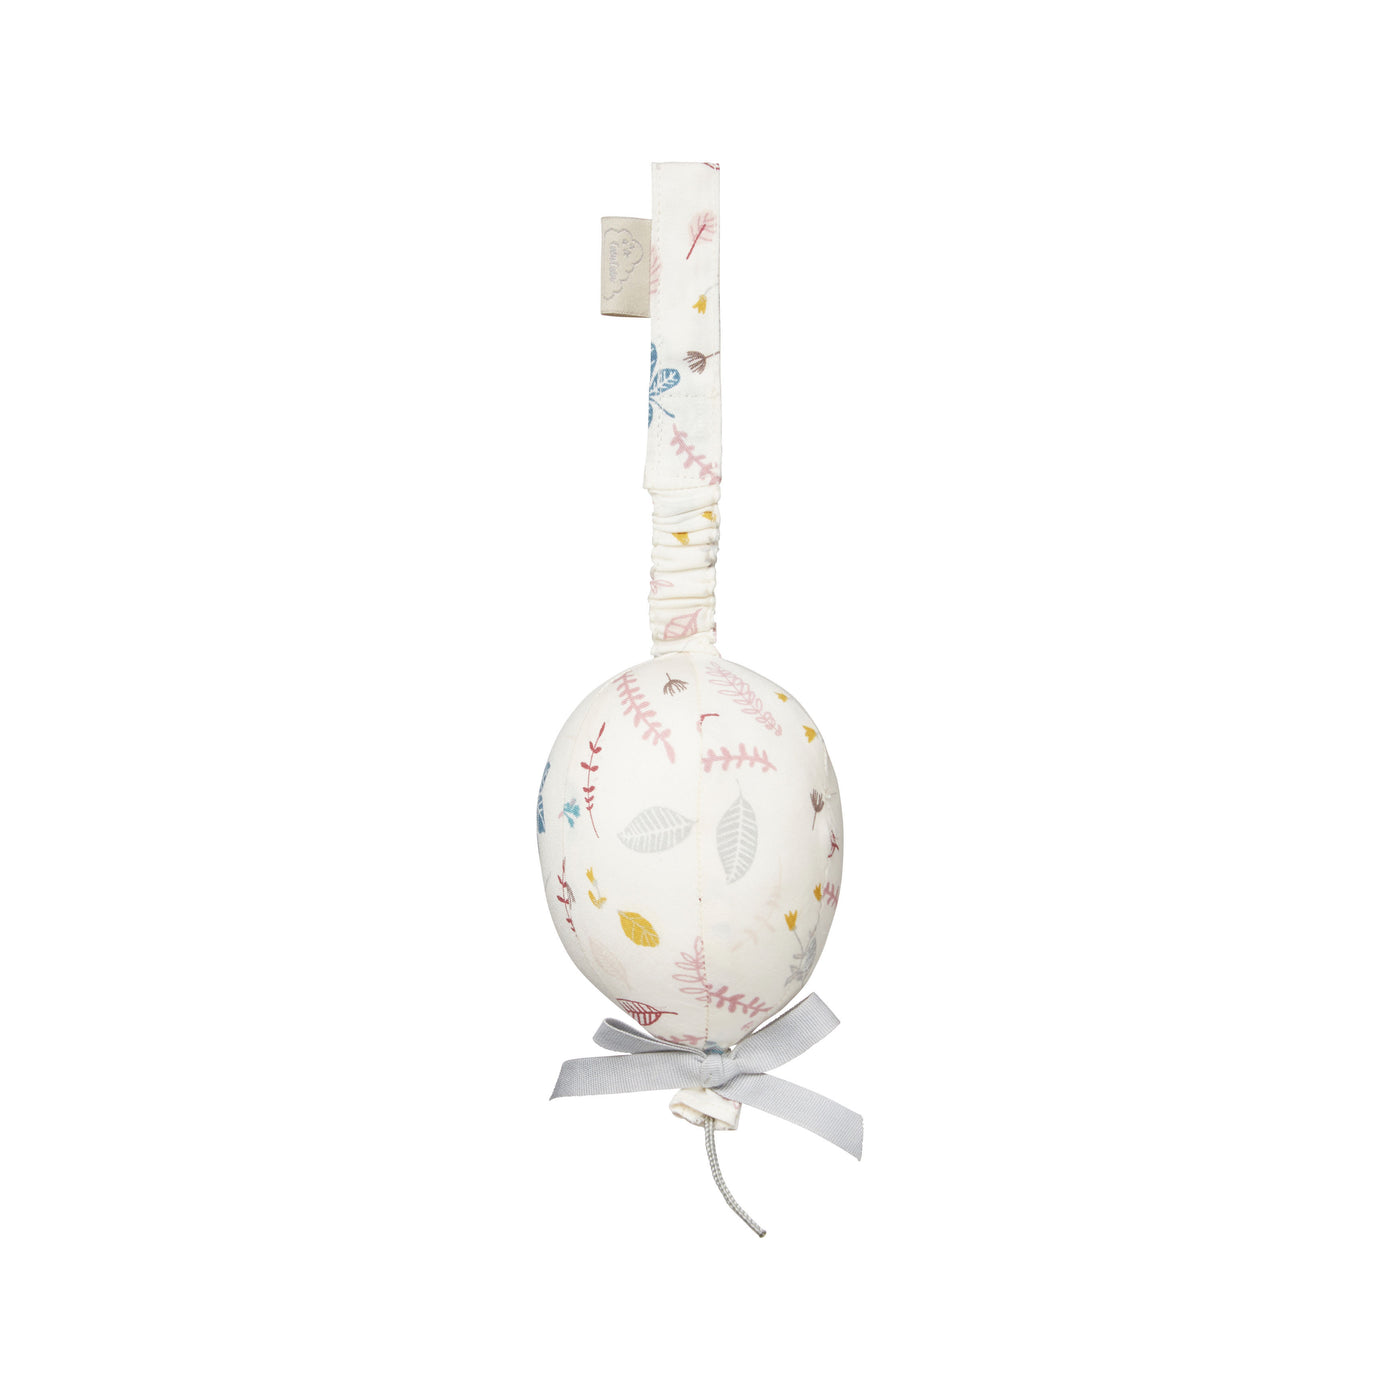 Play Gym Toy Balloon - Pressed Leaves Rose